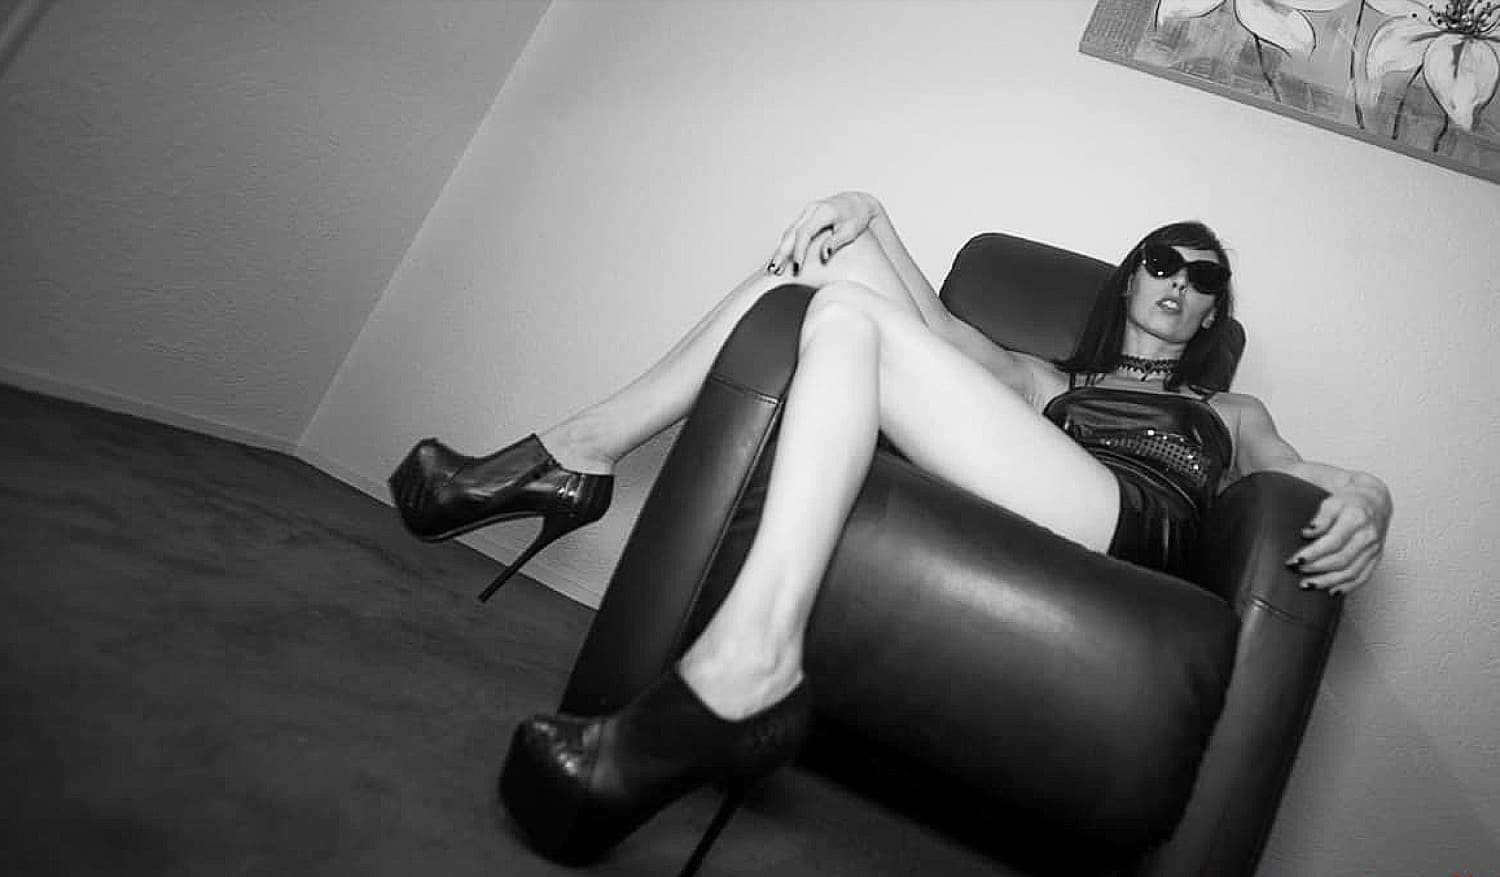 mistress kym with black glasses on a black couch showing her long legs and black high heels shoes Home flipped